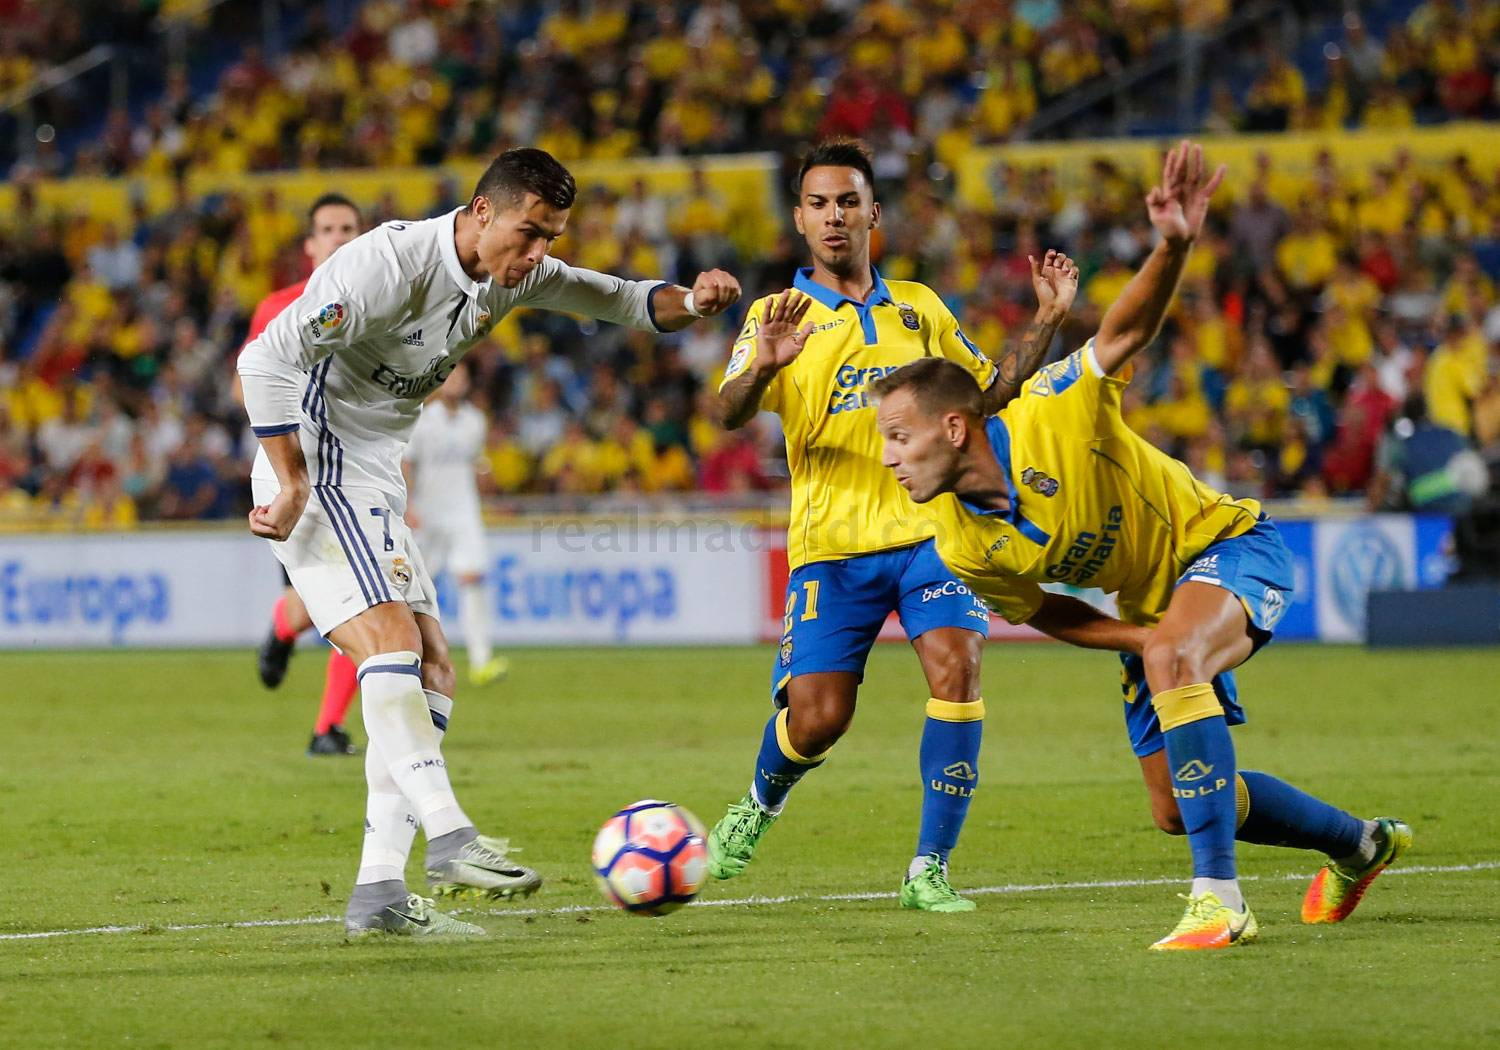 Real Madrid - Las Palmas - Real Madrid - 24-09-2016